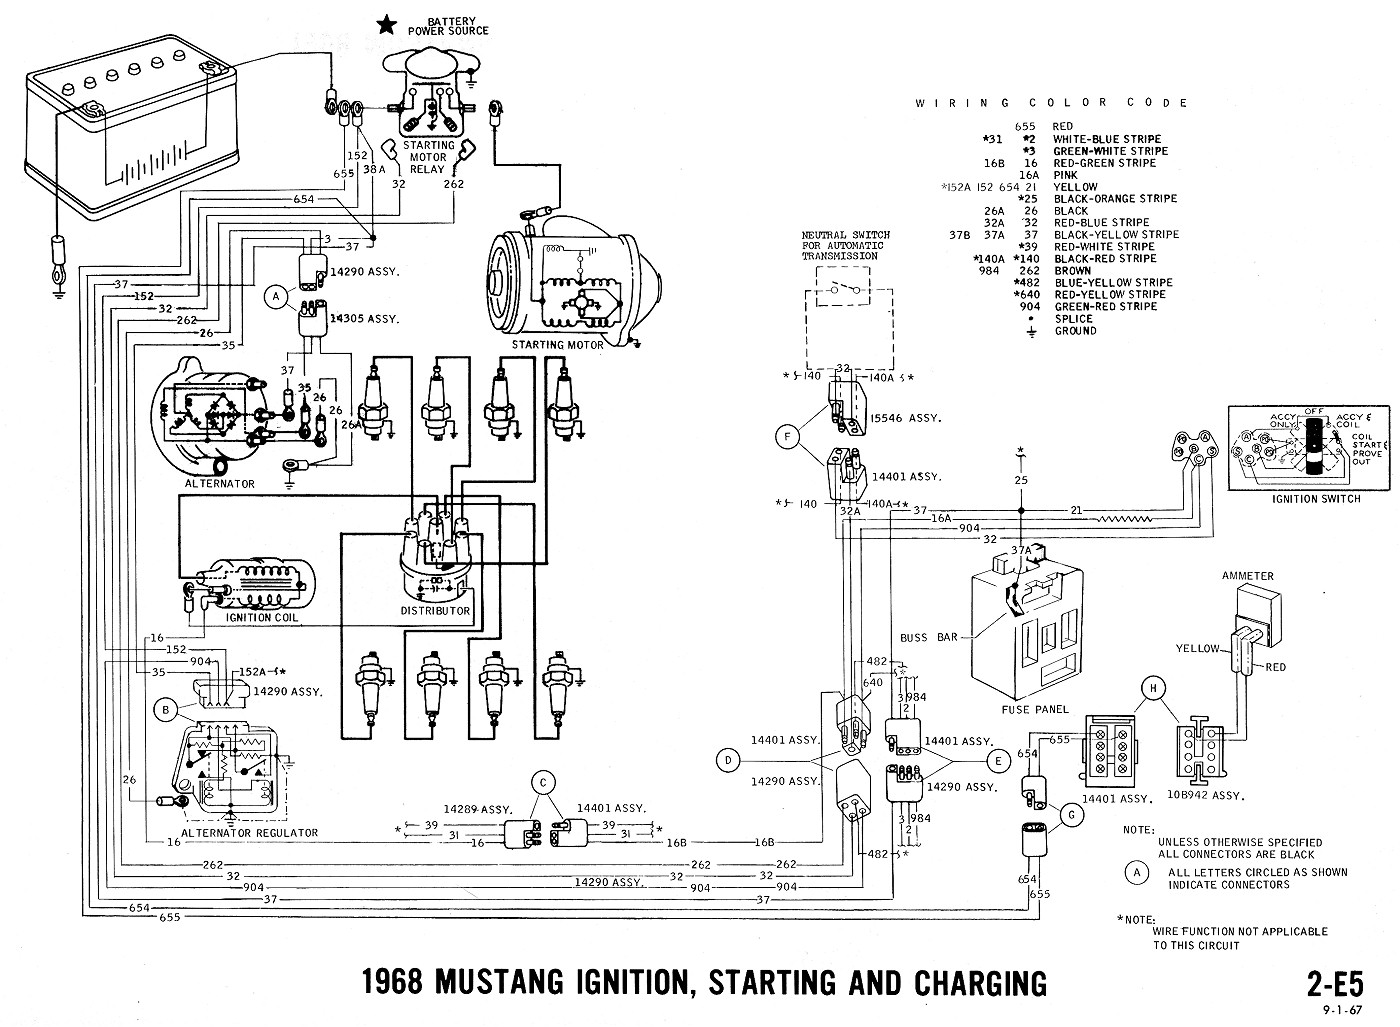 hight resolution of 1968 mustang voltage regulator wiring diagram wiring diagram third alternator regulator wiring diagram 1967 mustang alternator